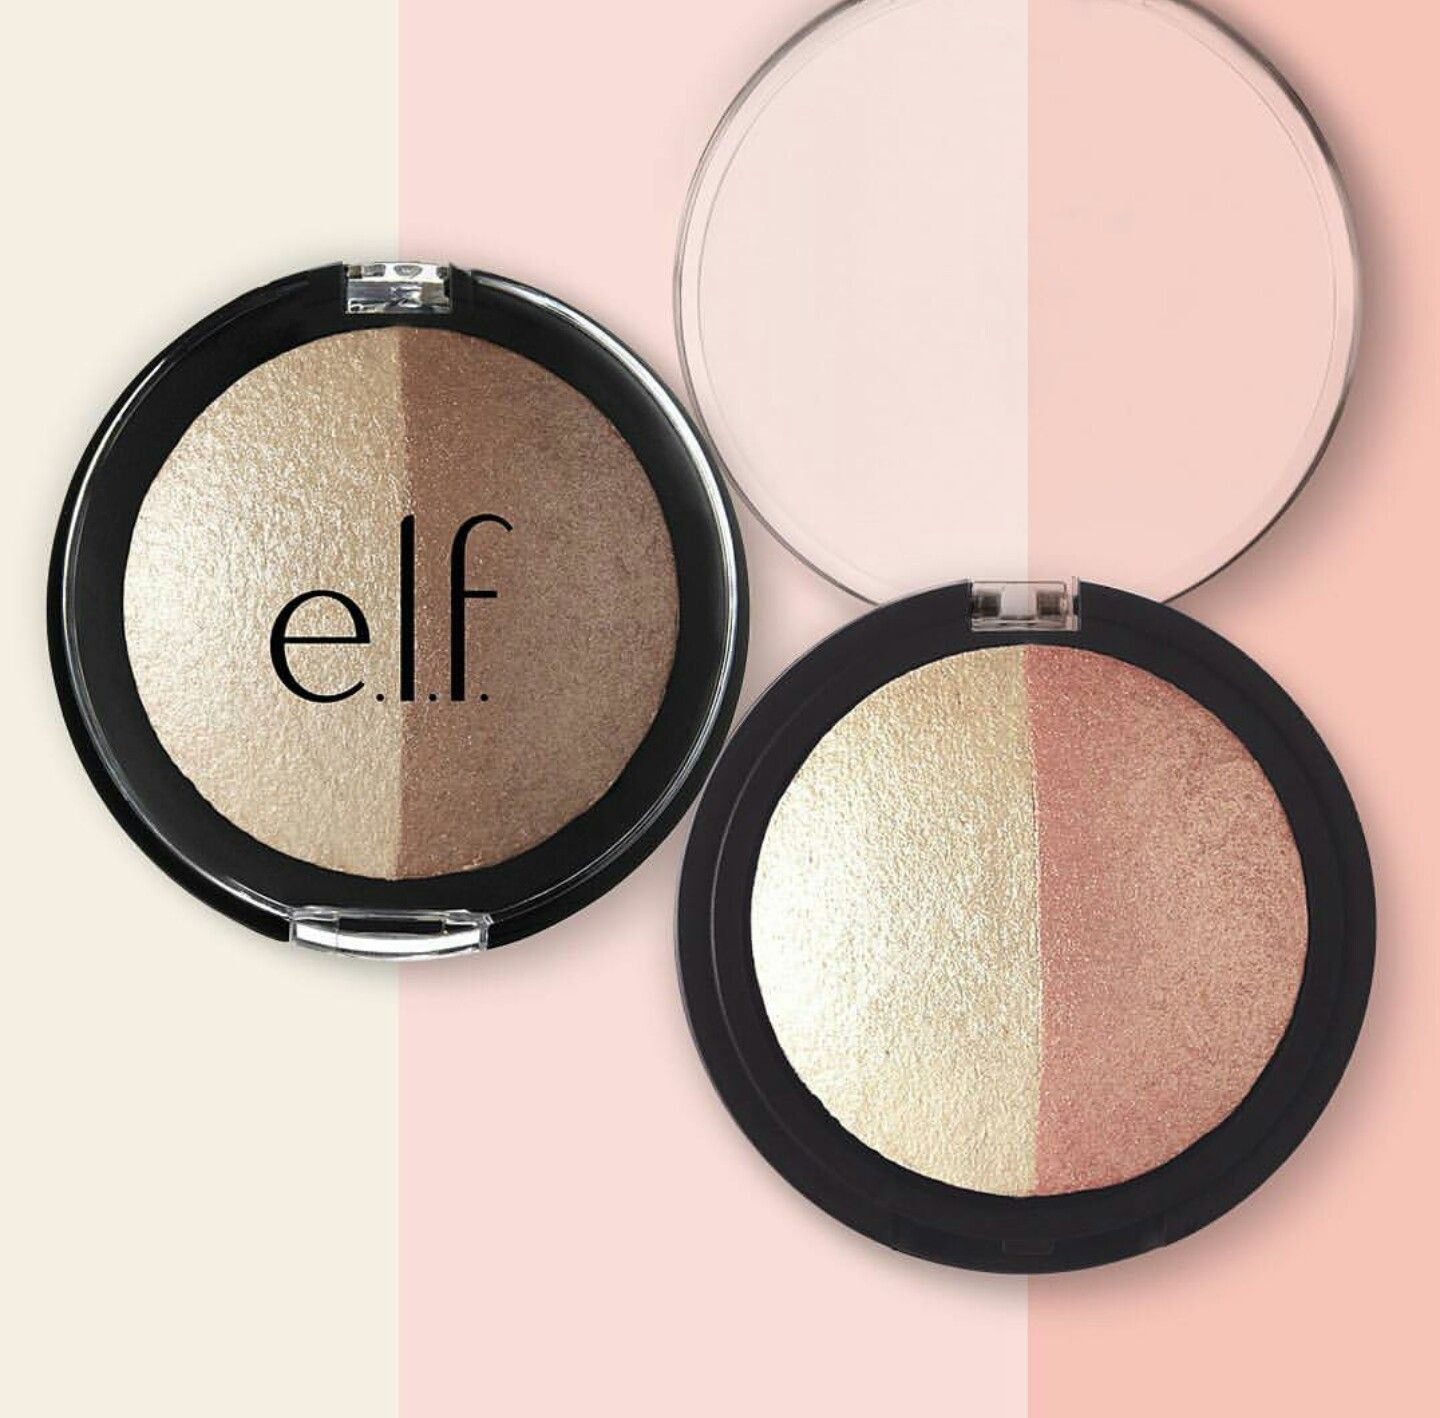 New elf baked blush highlighter and bronzer duosphoto face new elf baked blush highlighter and bronzer duosphoto ccuart Choice Image